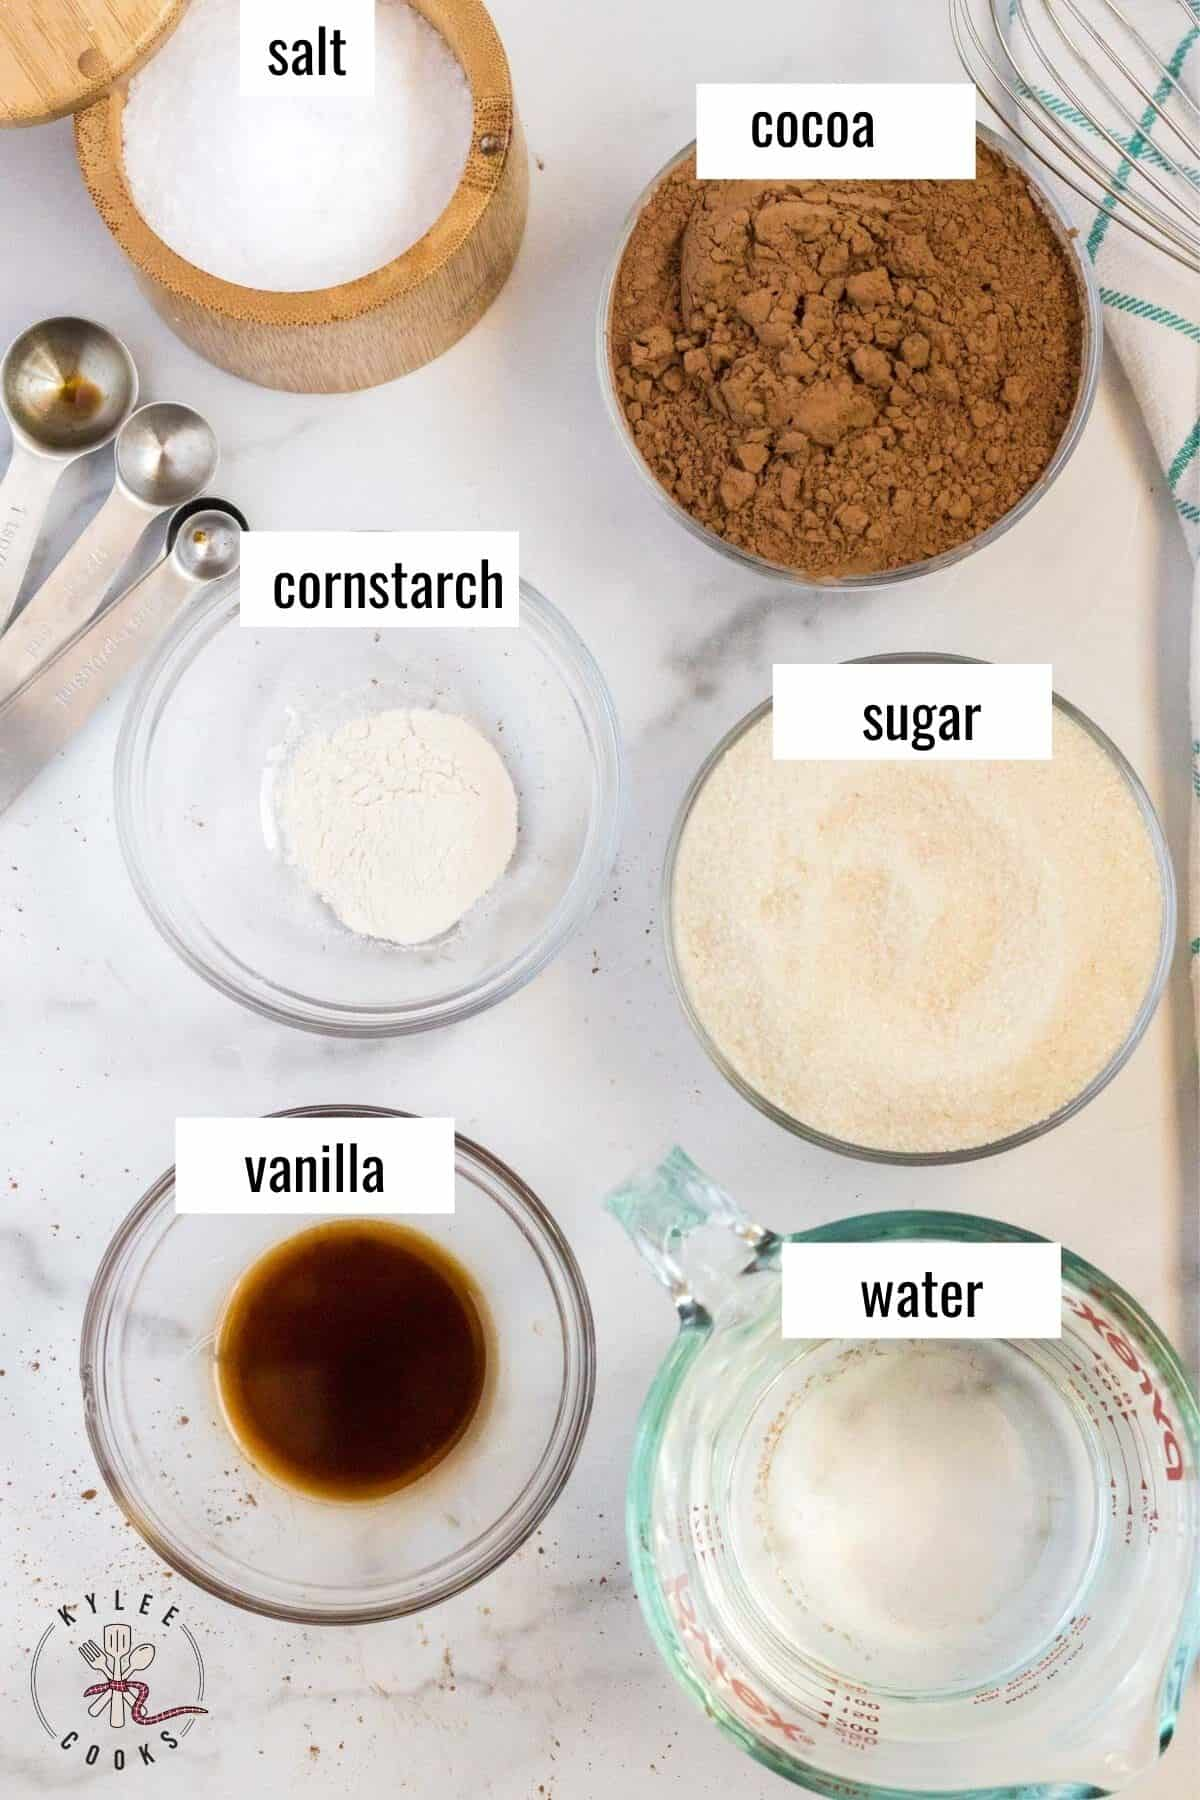 ingredients for homemade chocolate syrup laid out and labeled